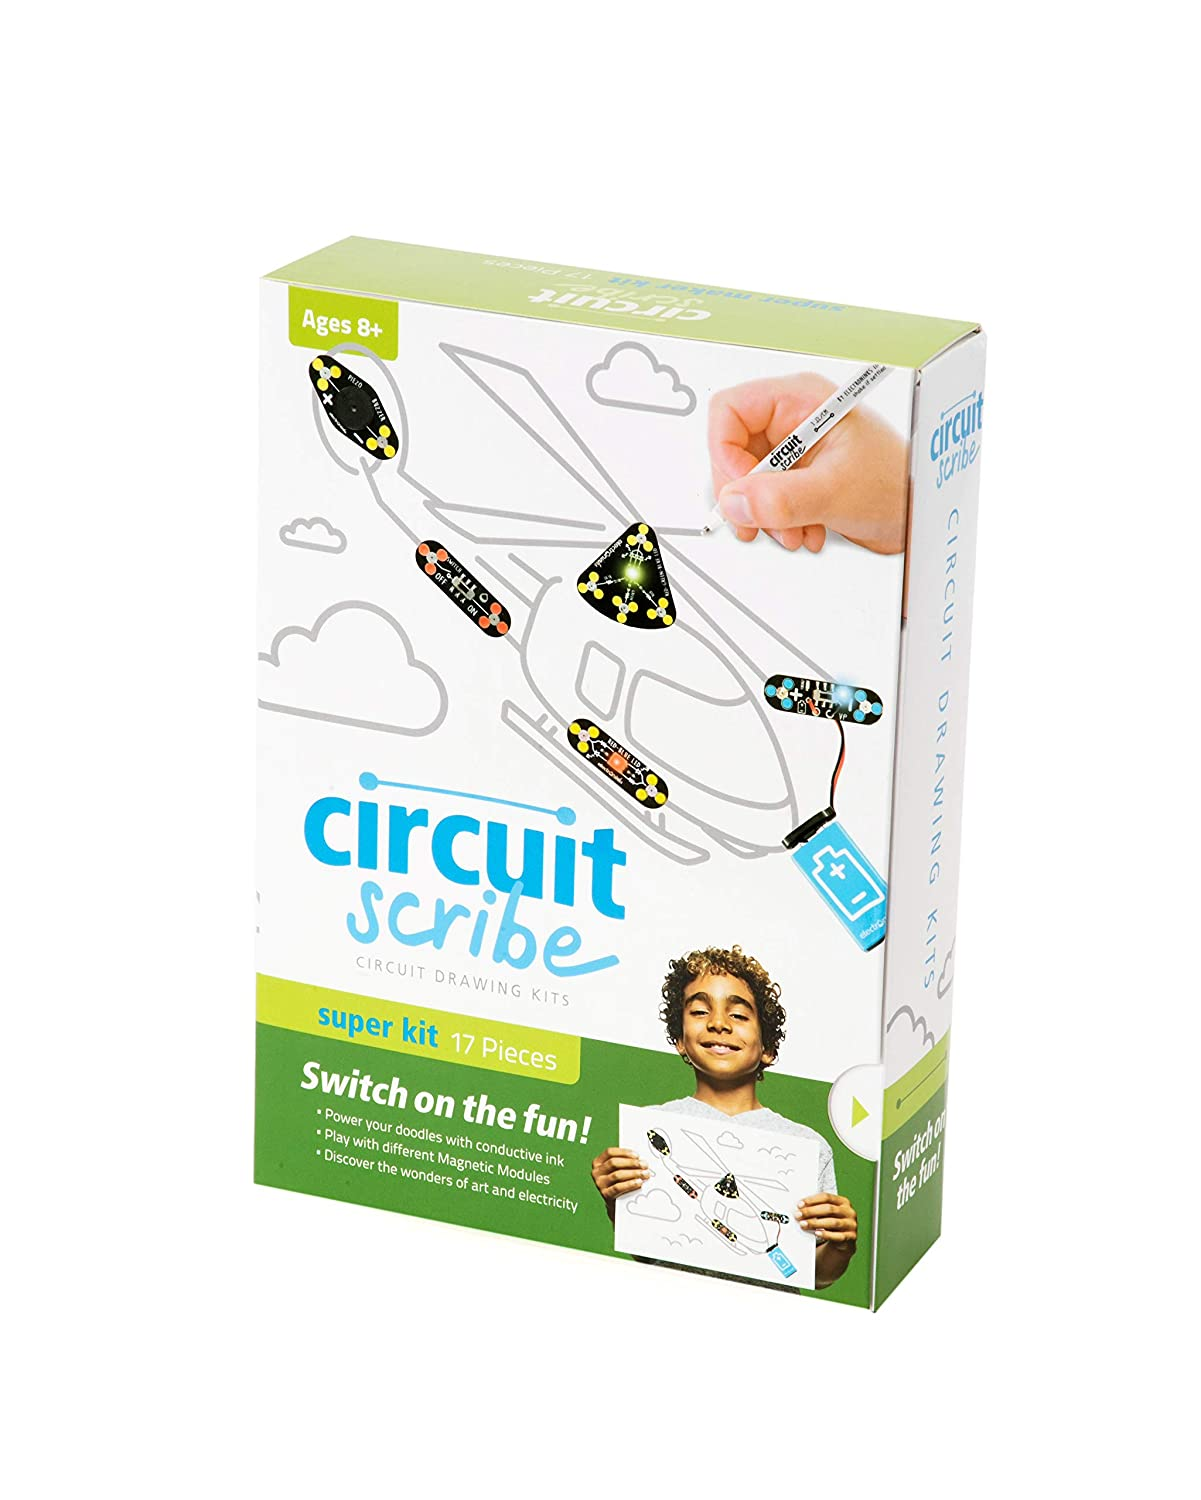 Circuit Scribe Maker Kit Includes Stem Workbook Drawing Tool That S Free For Users To Design And Draw Conductive Silver Ink Pen Everything You Need Learn Explore Create Your Own